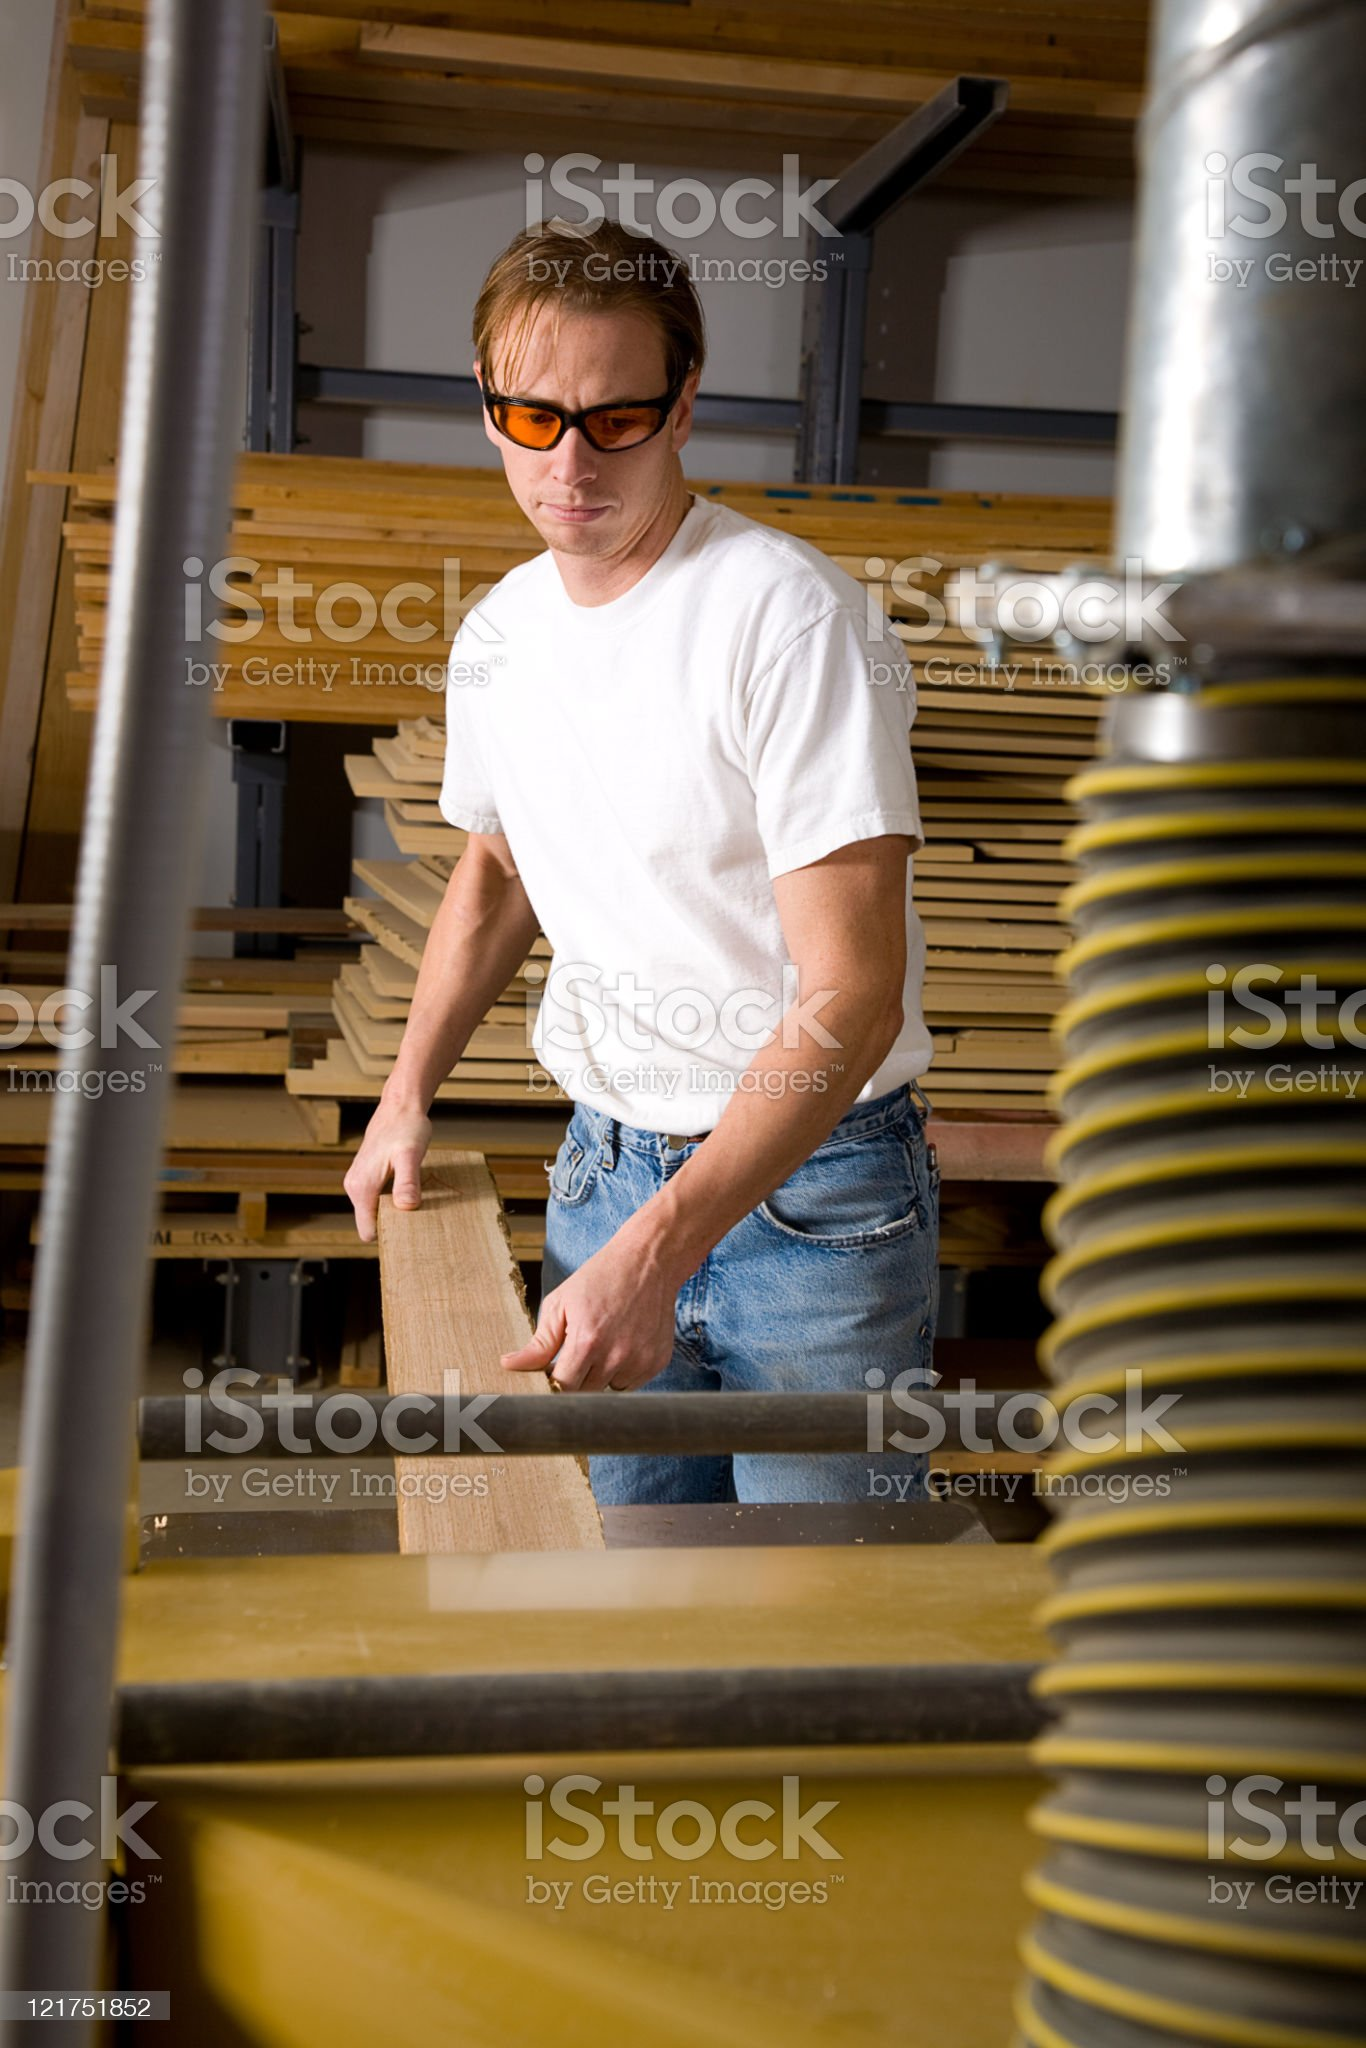 Wood Shop Series royalty-free stock photo